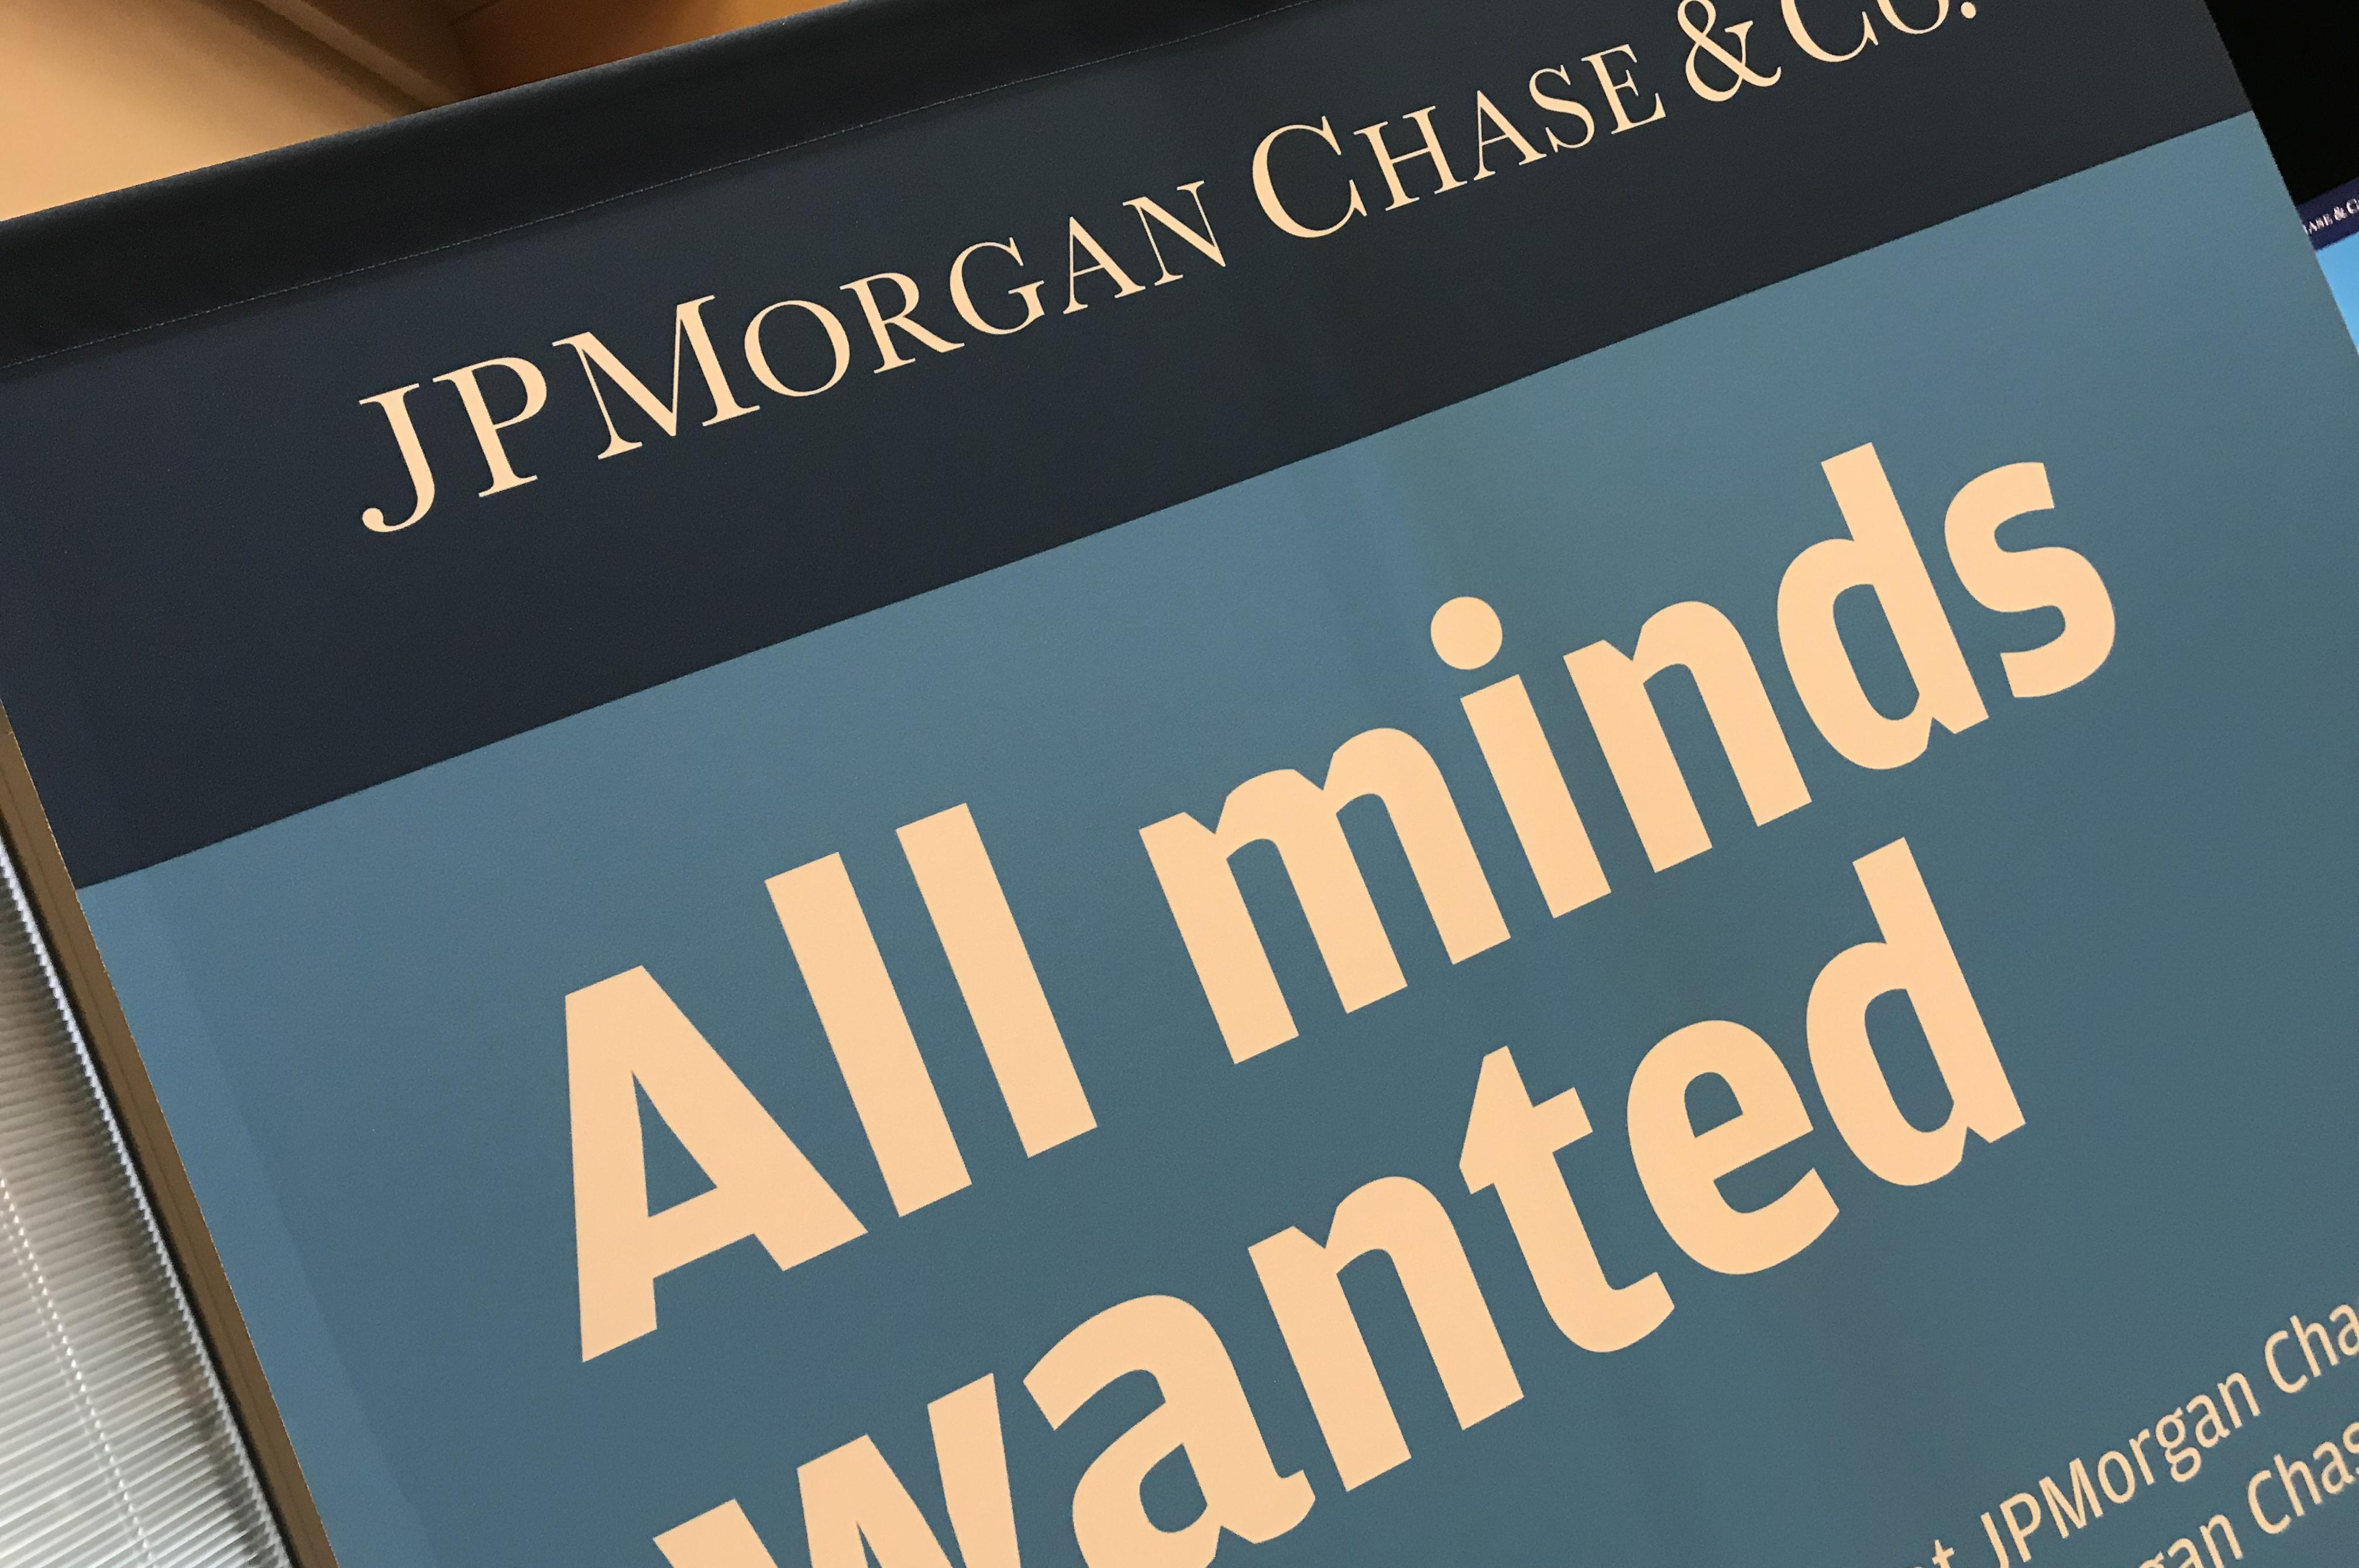 JPMorgan Chase & Co. all minds wanted sign